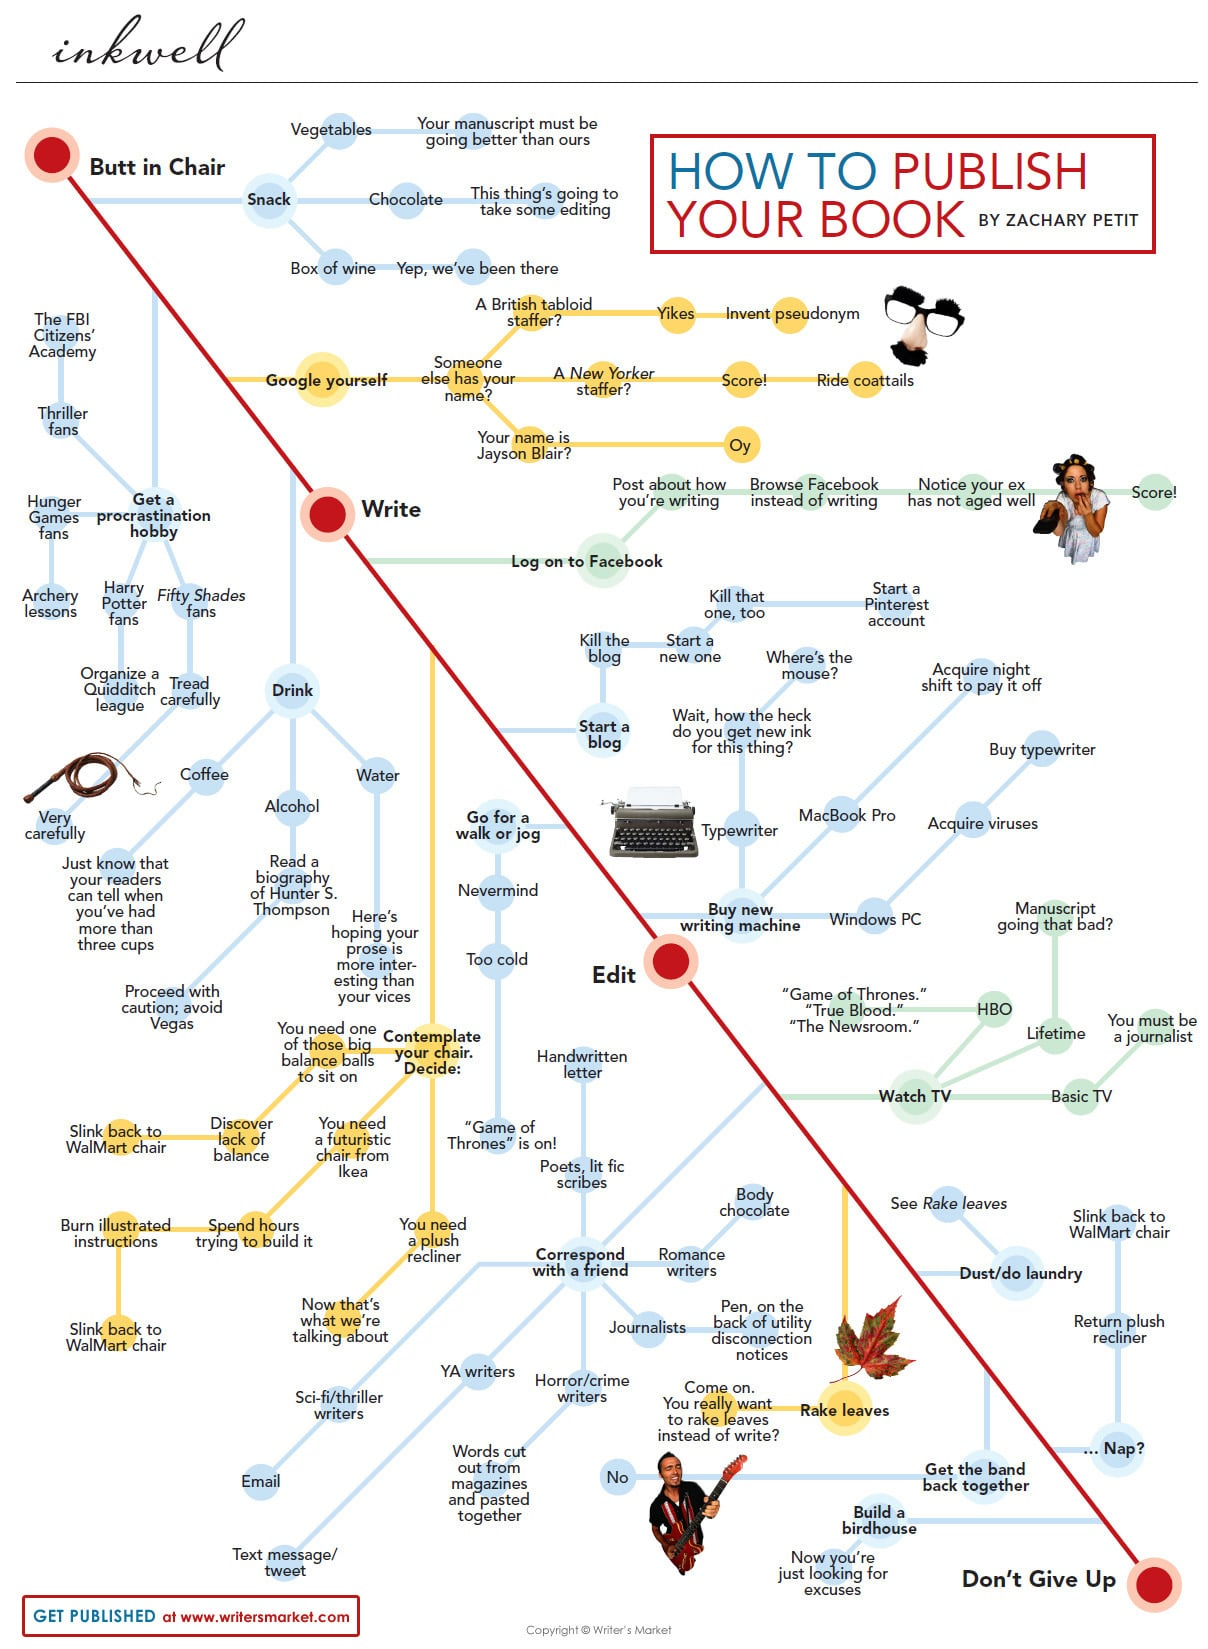 Finally Get Published: How To Publish A Book [Flowchart]